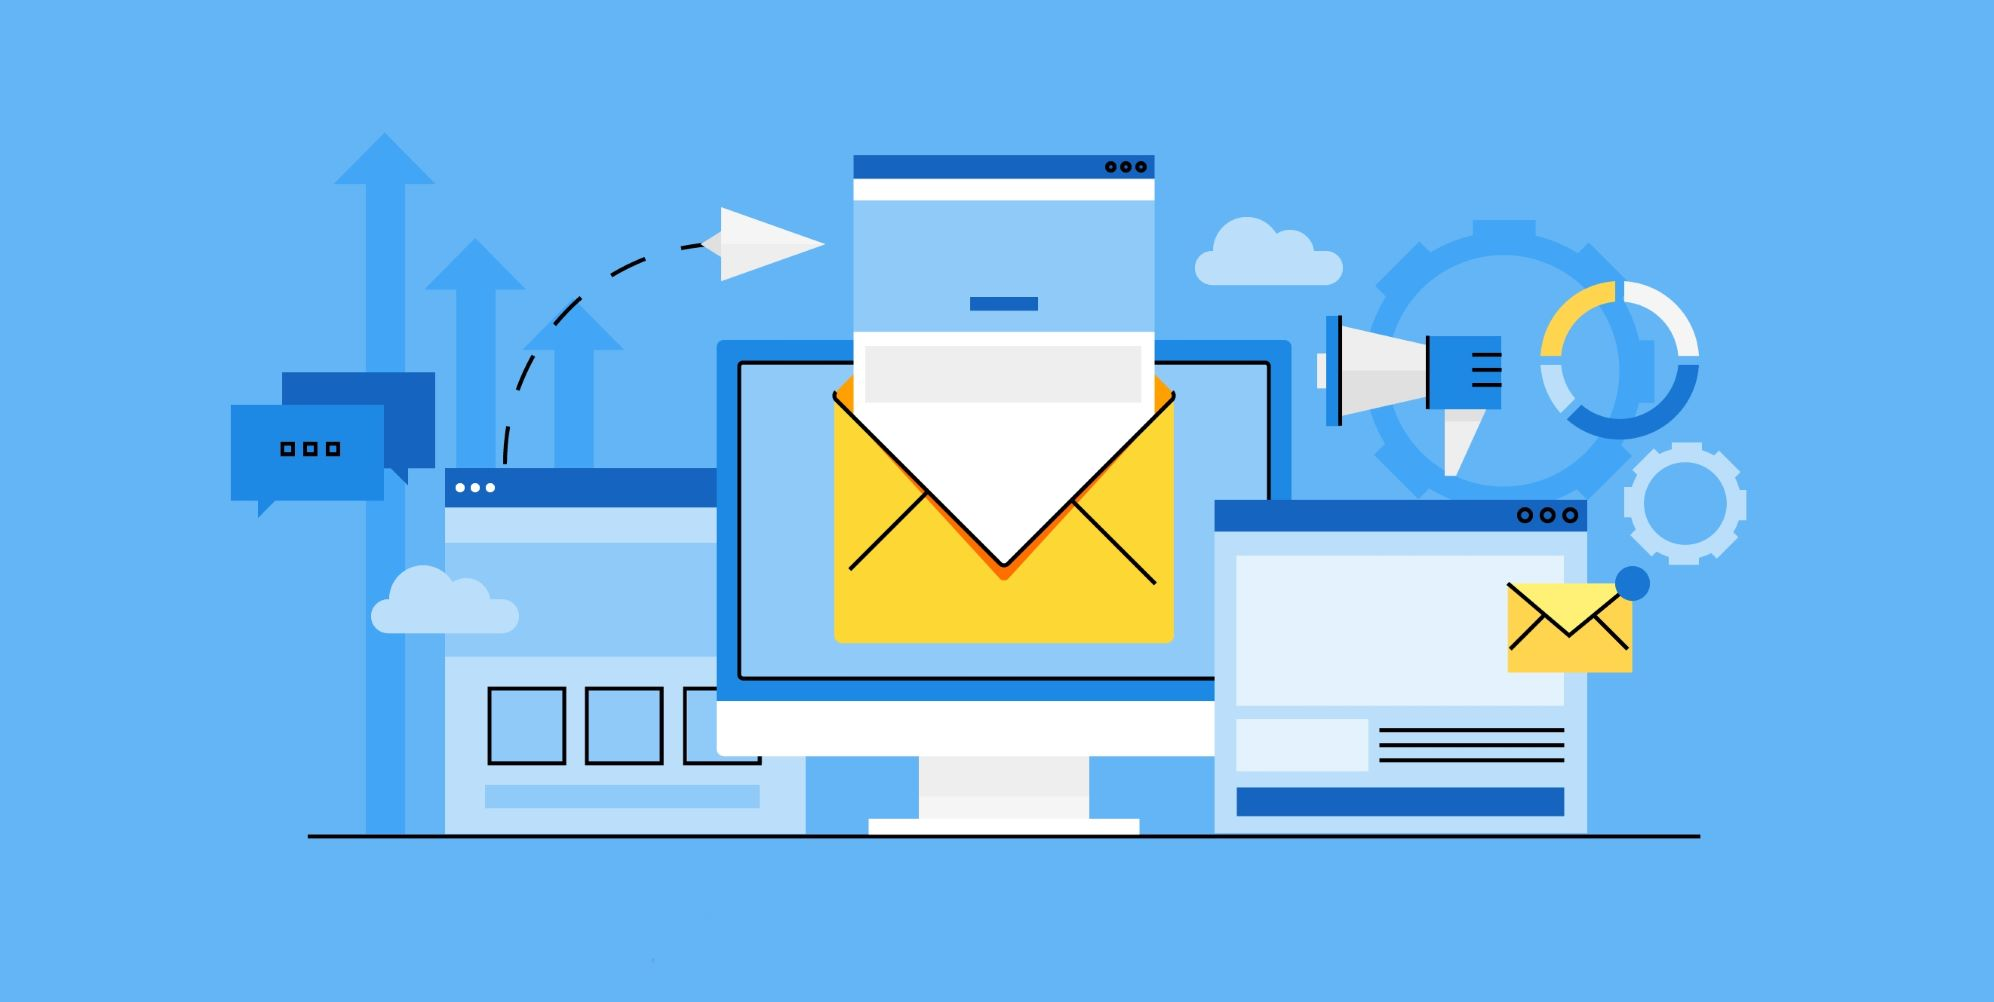 Customer Support using email can be poor